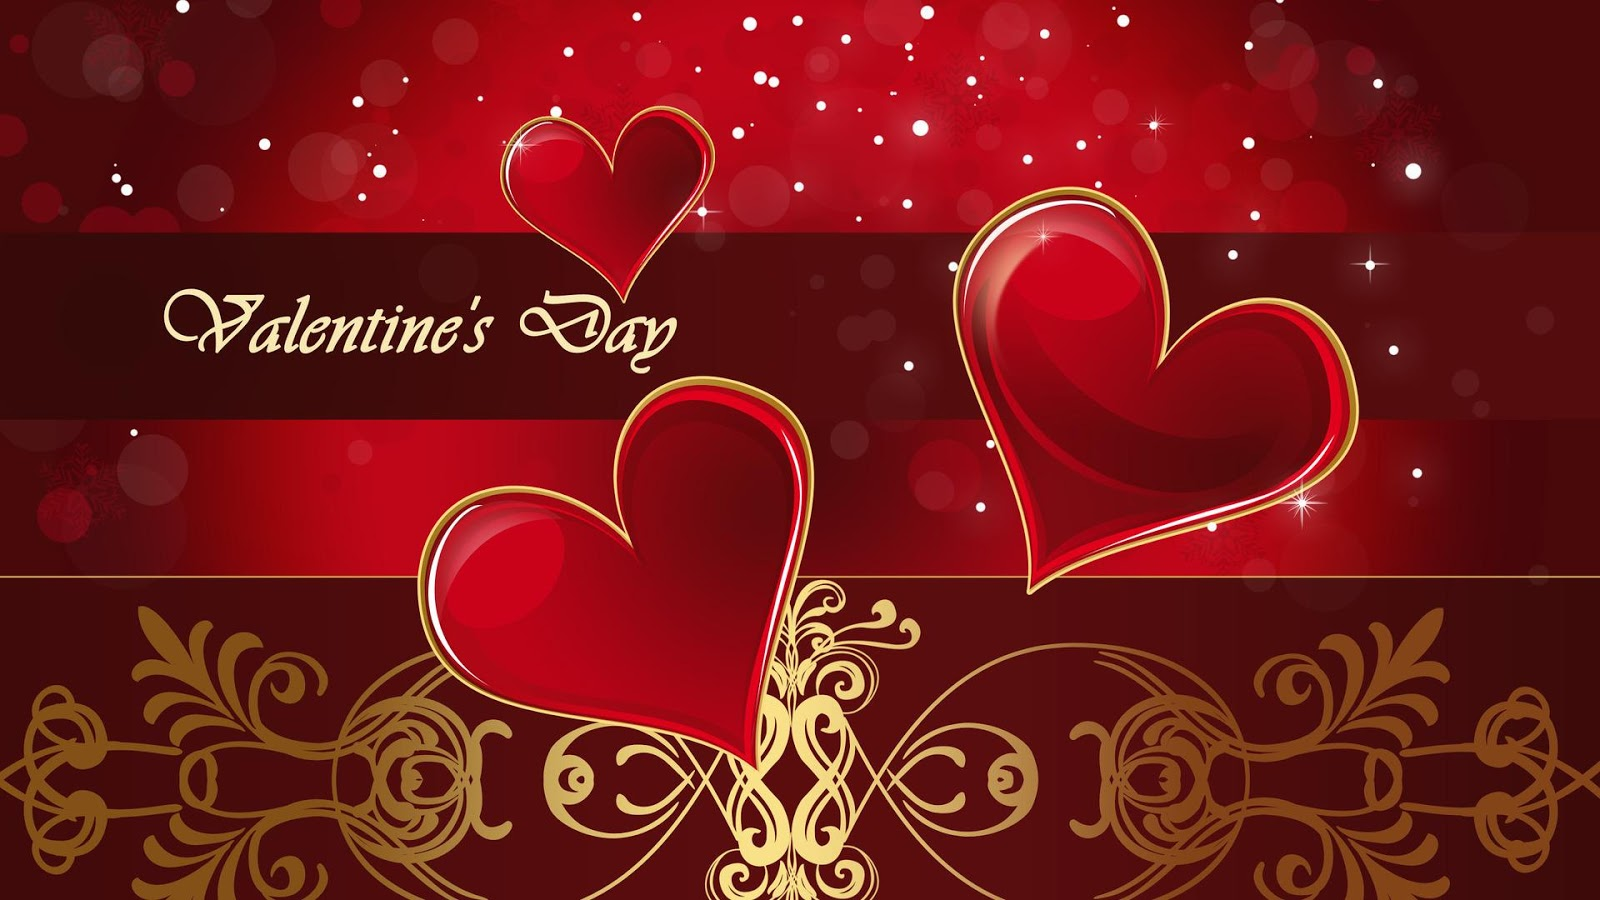 Happy Valentines Day Images 2016 for Love  Happy Valentines day